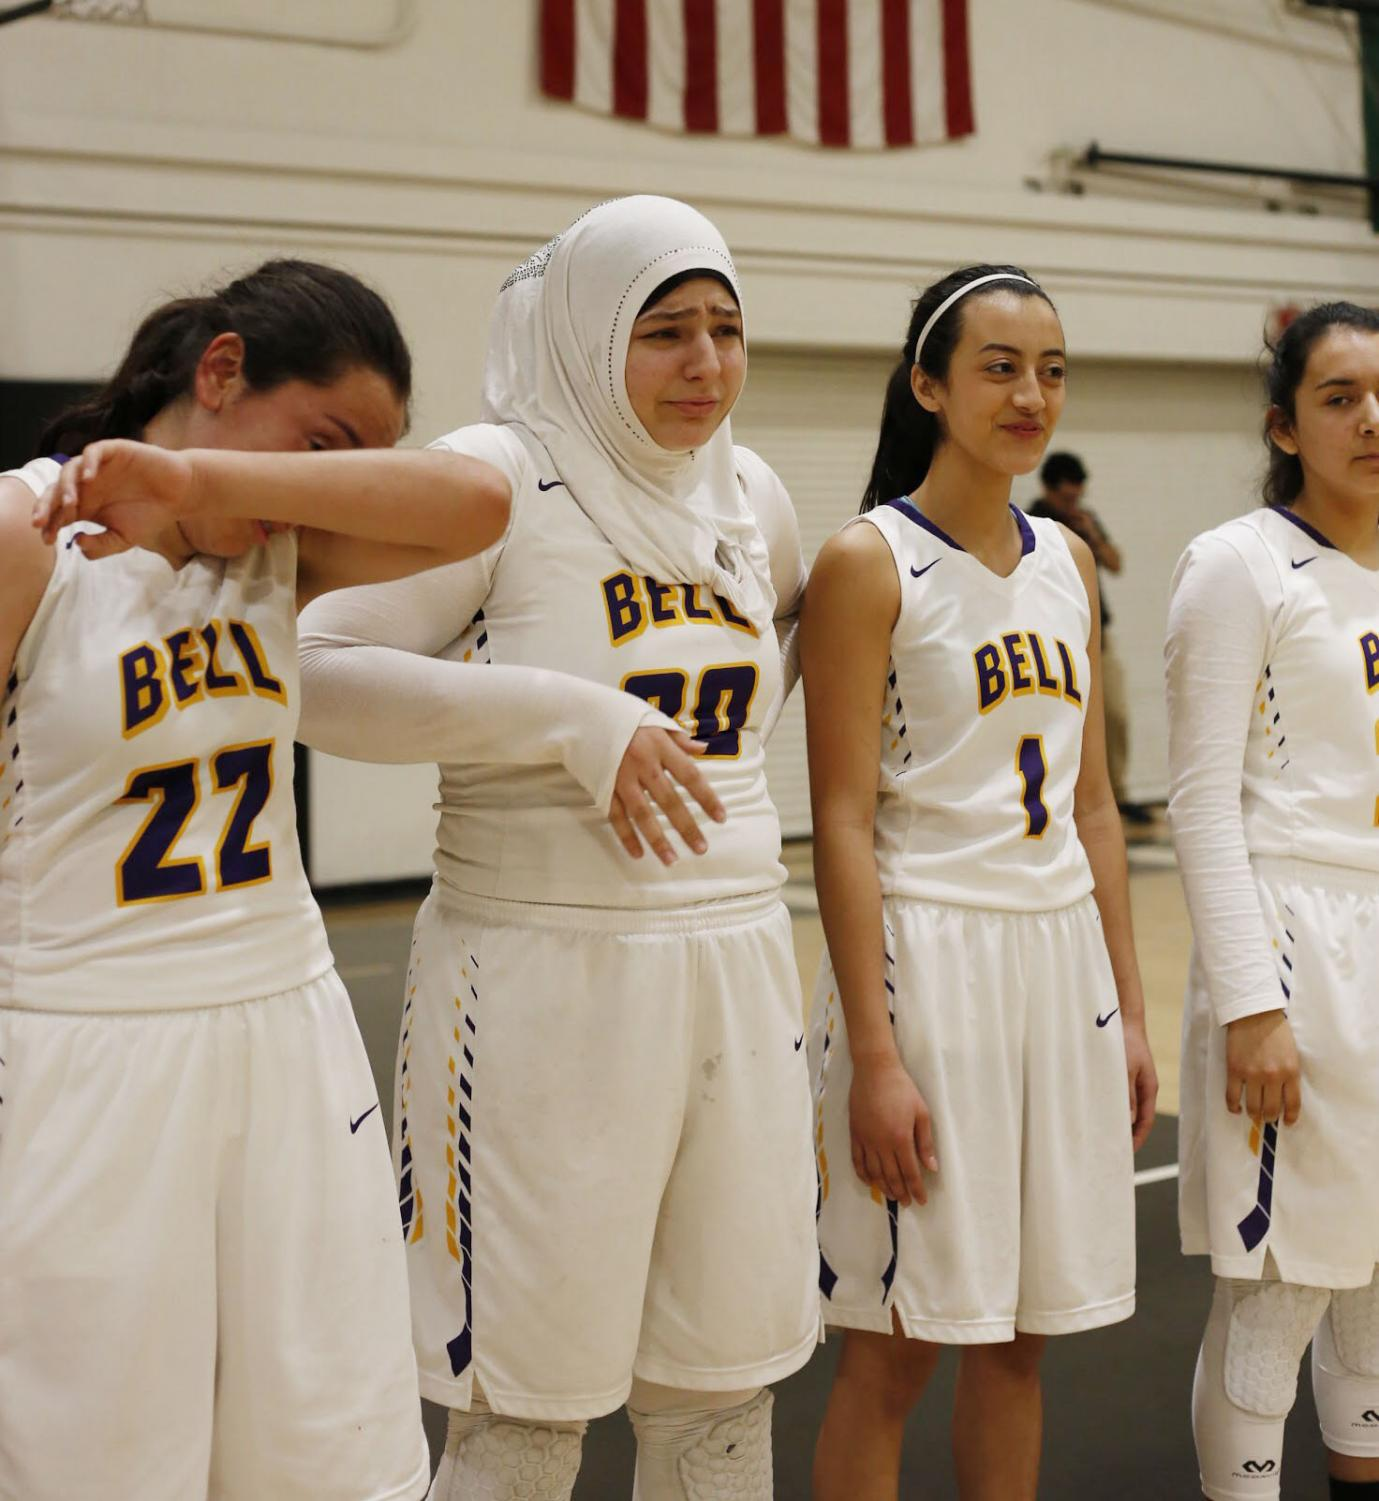 Leila+Saab+and+Brissa+Castillo+unable+to+hold+back+tears+as+they+wait+to+receive+their+medals